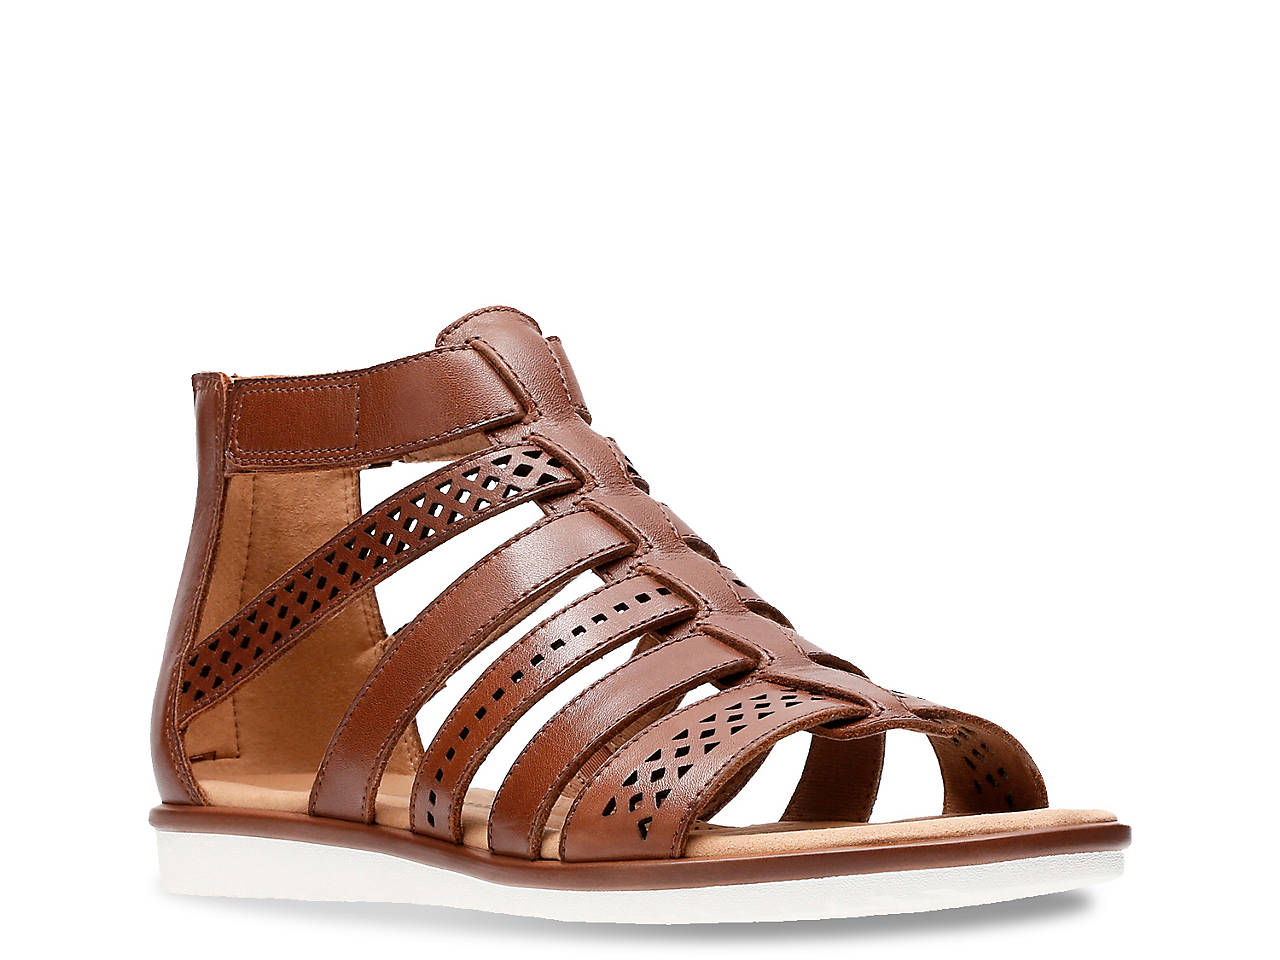 2b0617b51a5 Clarks Kele Lotus Gladiator Sandal Women s Shoes